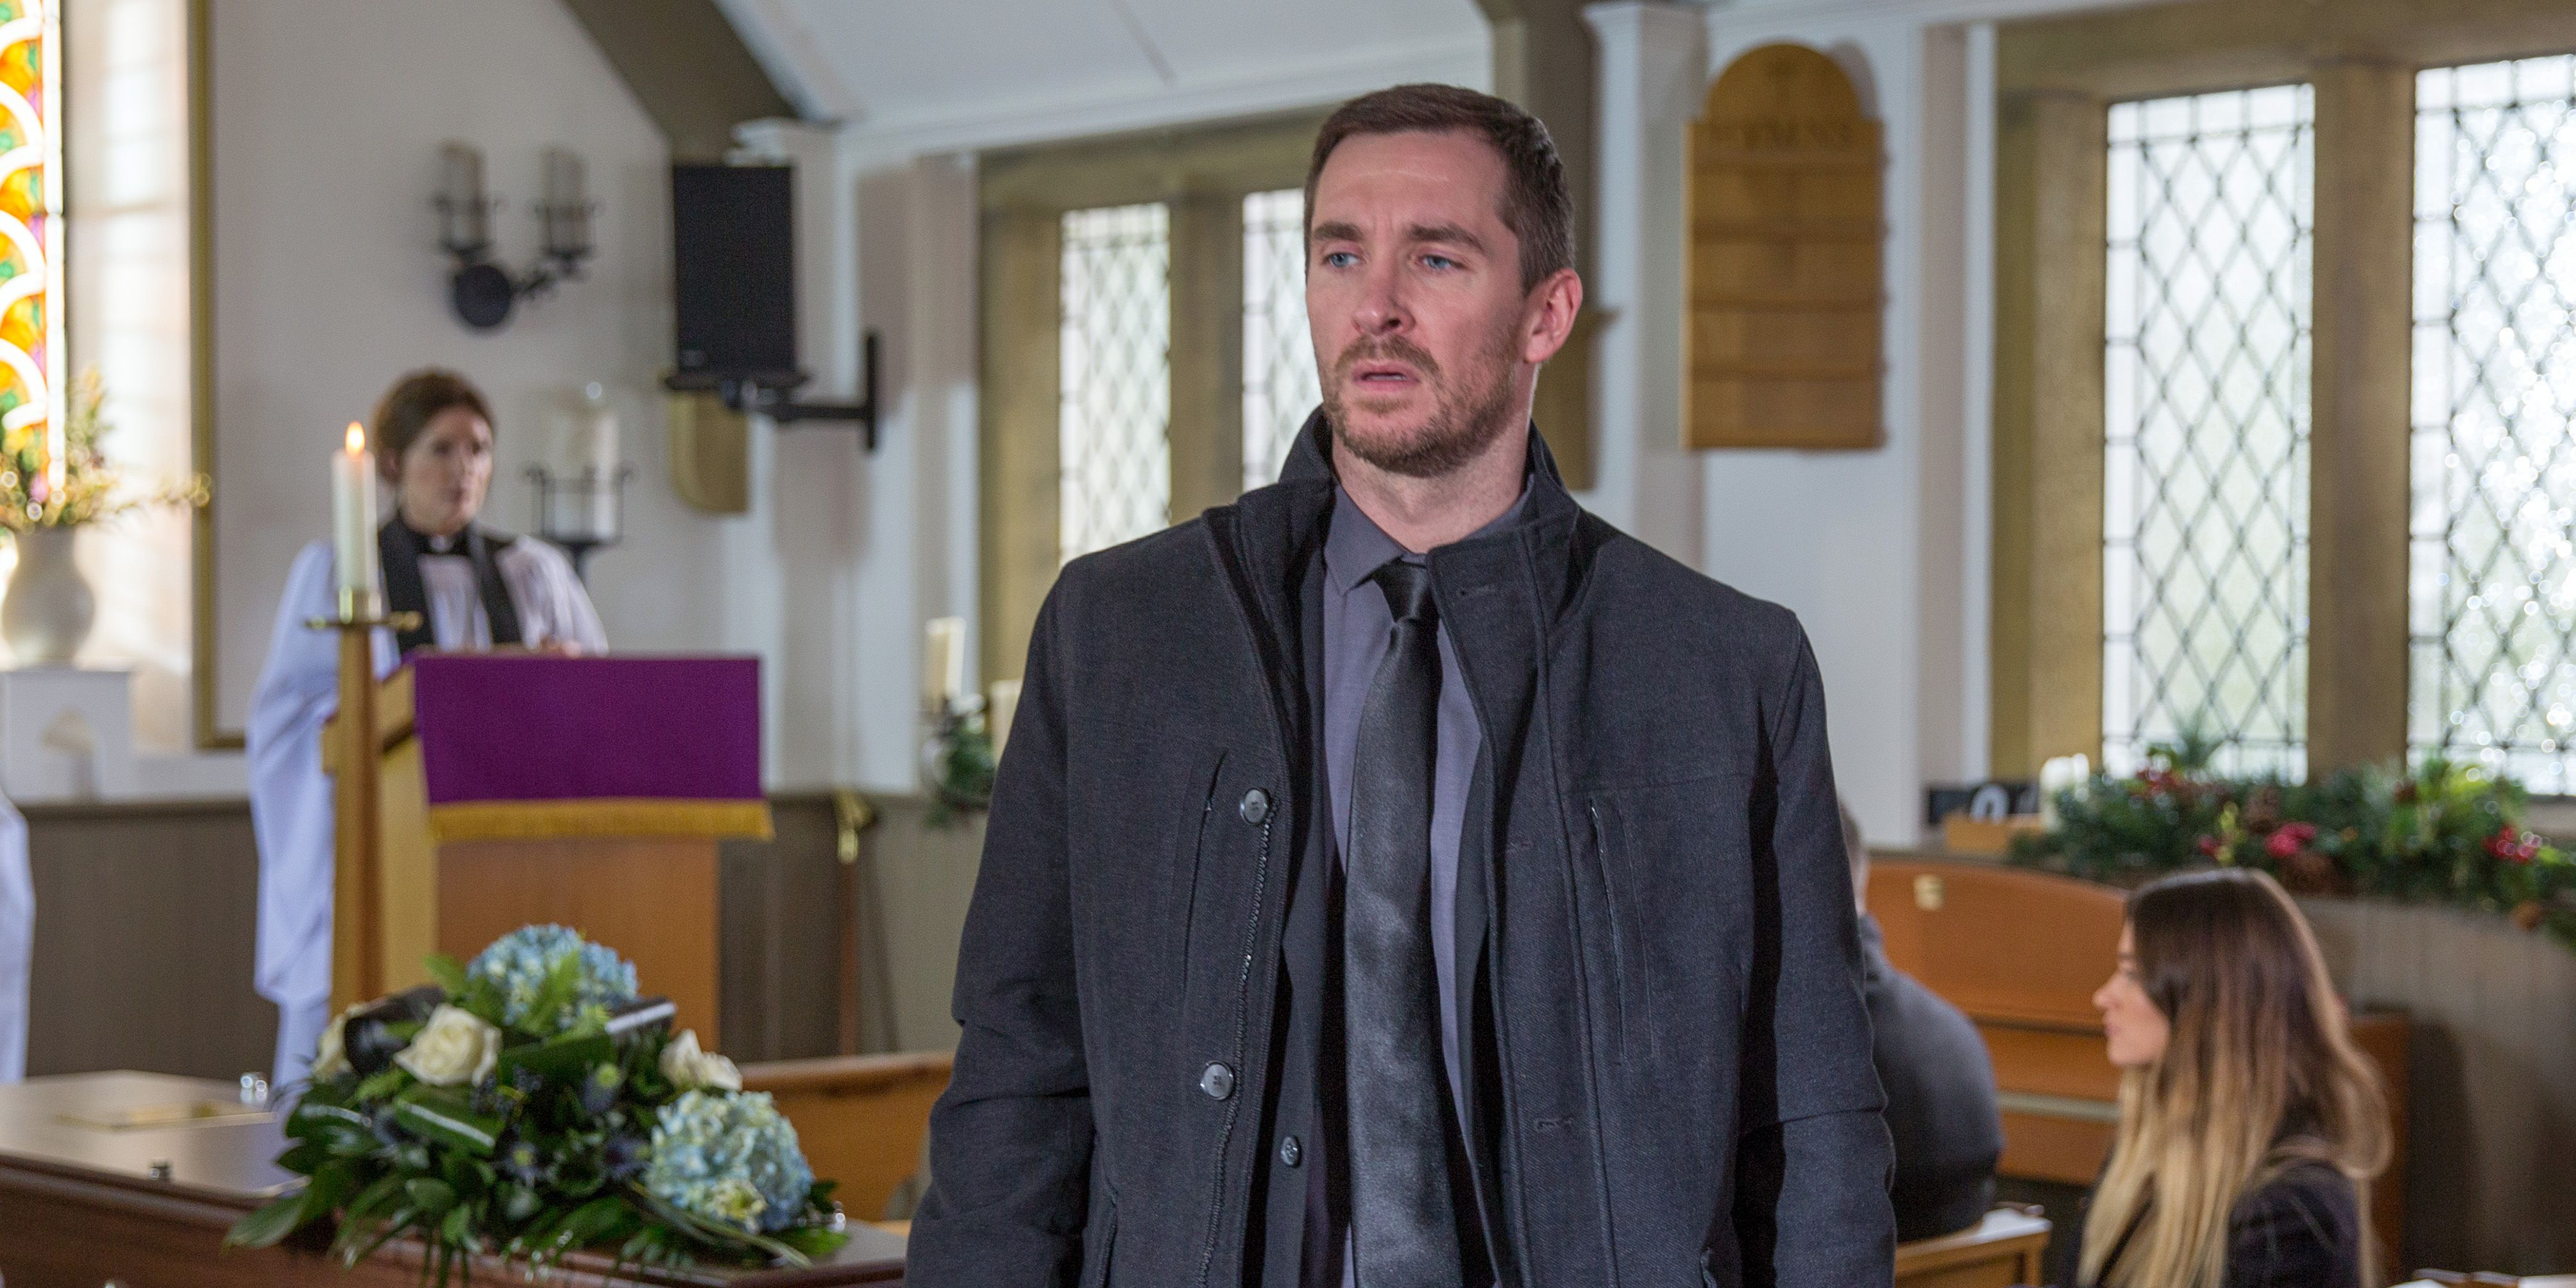 Ross Barton, Pete Barton and Debbie Dingle attend Emma's funeral in Emmerdale